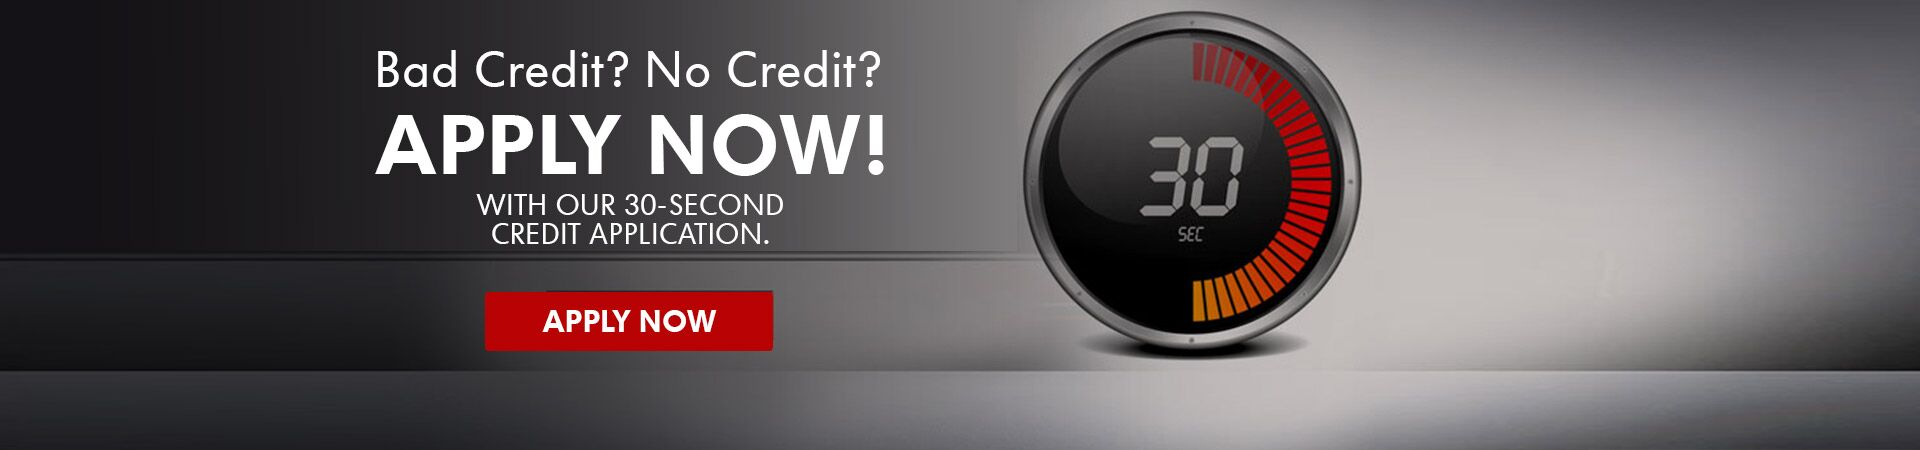 30-Second Credit Application